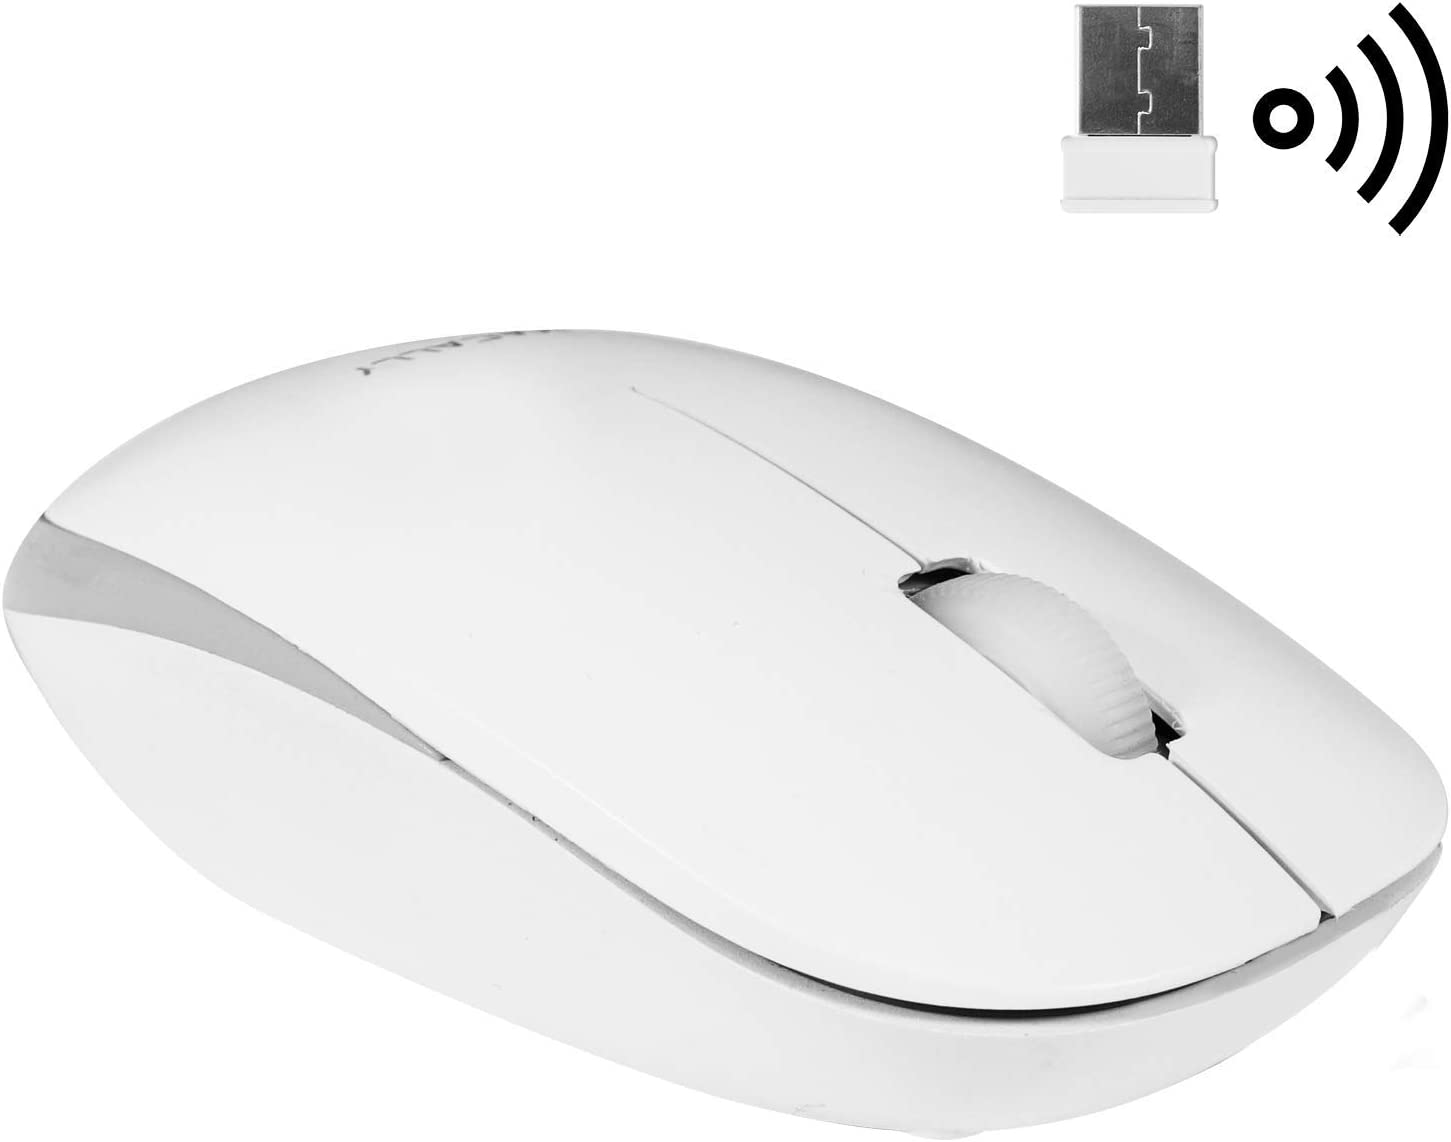 Macally 2.4G Wireless Mouse (Optical) with USB Cordless Mice Receiver - Long Range & Portable - Works with Mac Mini/Apple MacBook Pro/Air or Windows PC Notebook Laptops & Desktop Computers - White